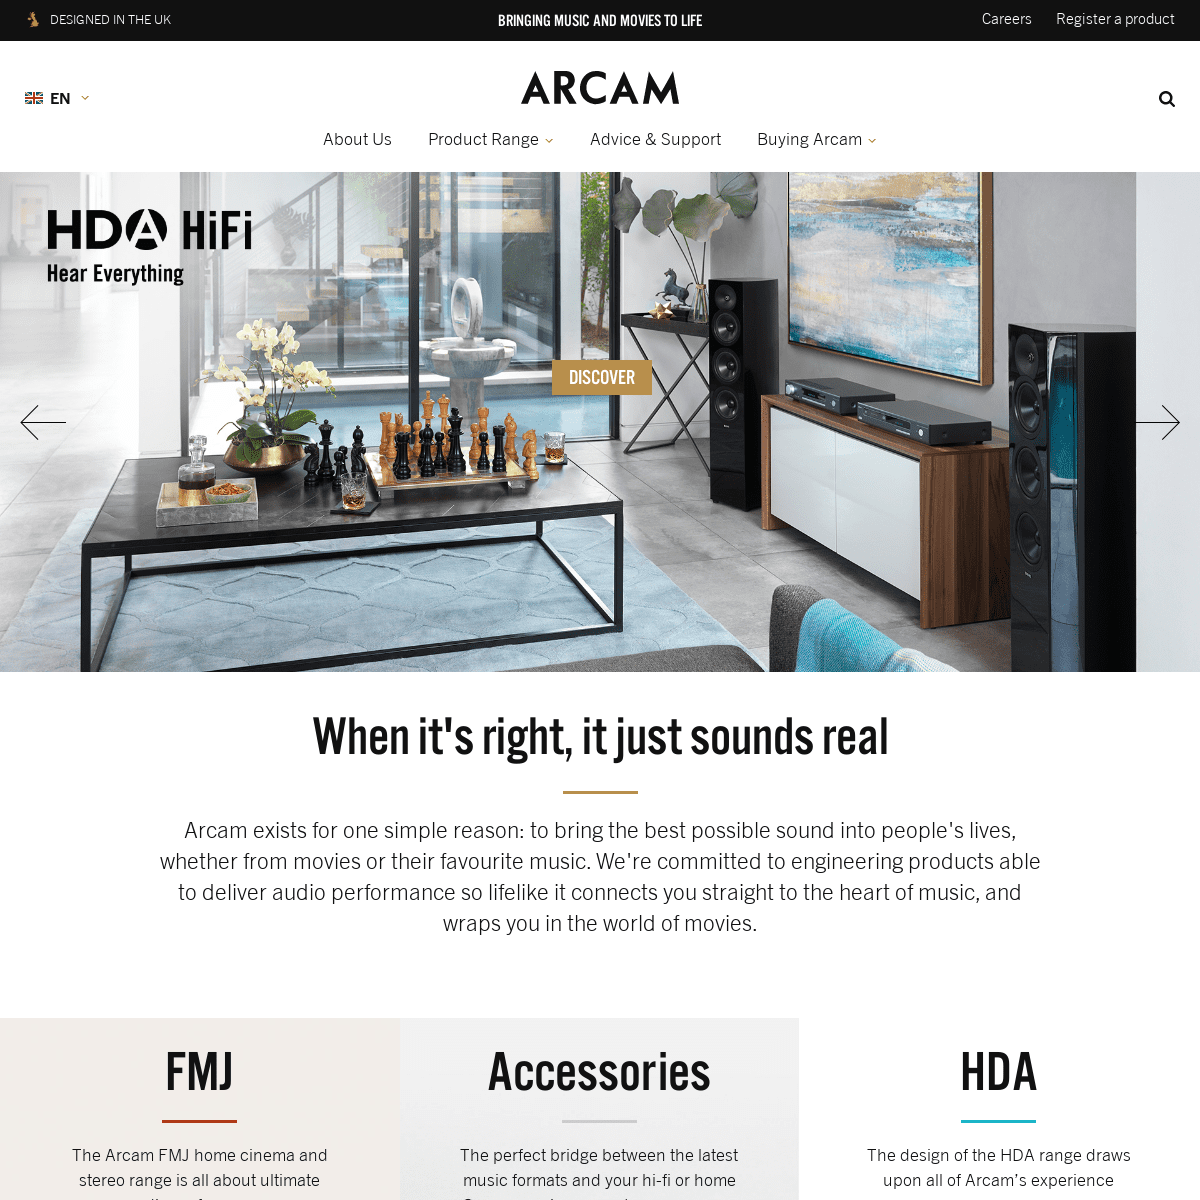 Arcam - bringing the best possible sound into people's lives